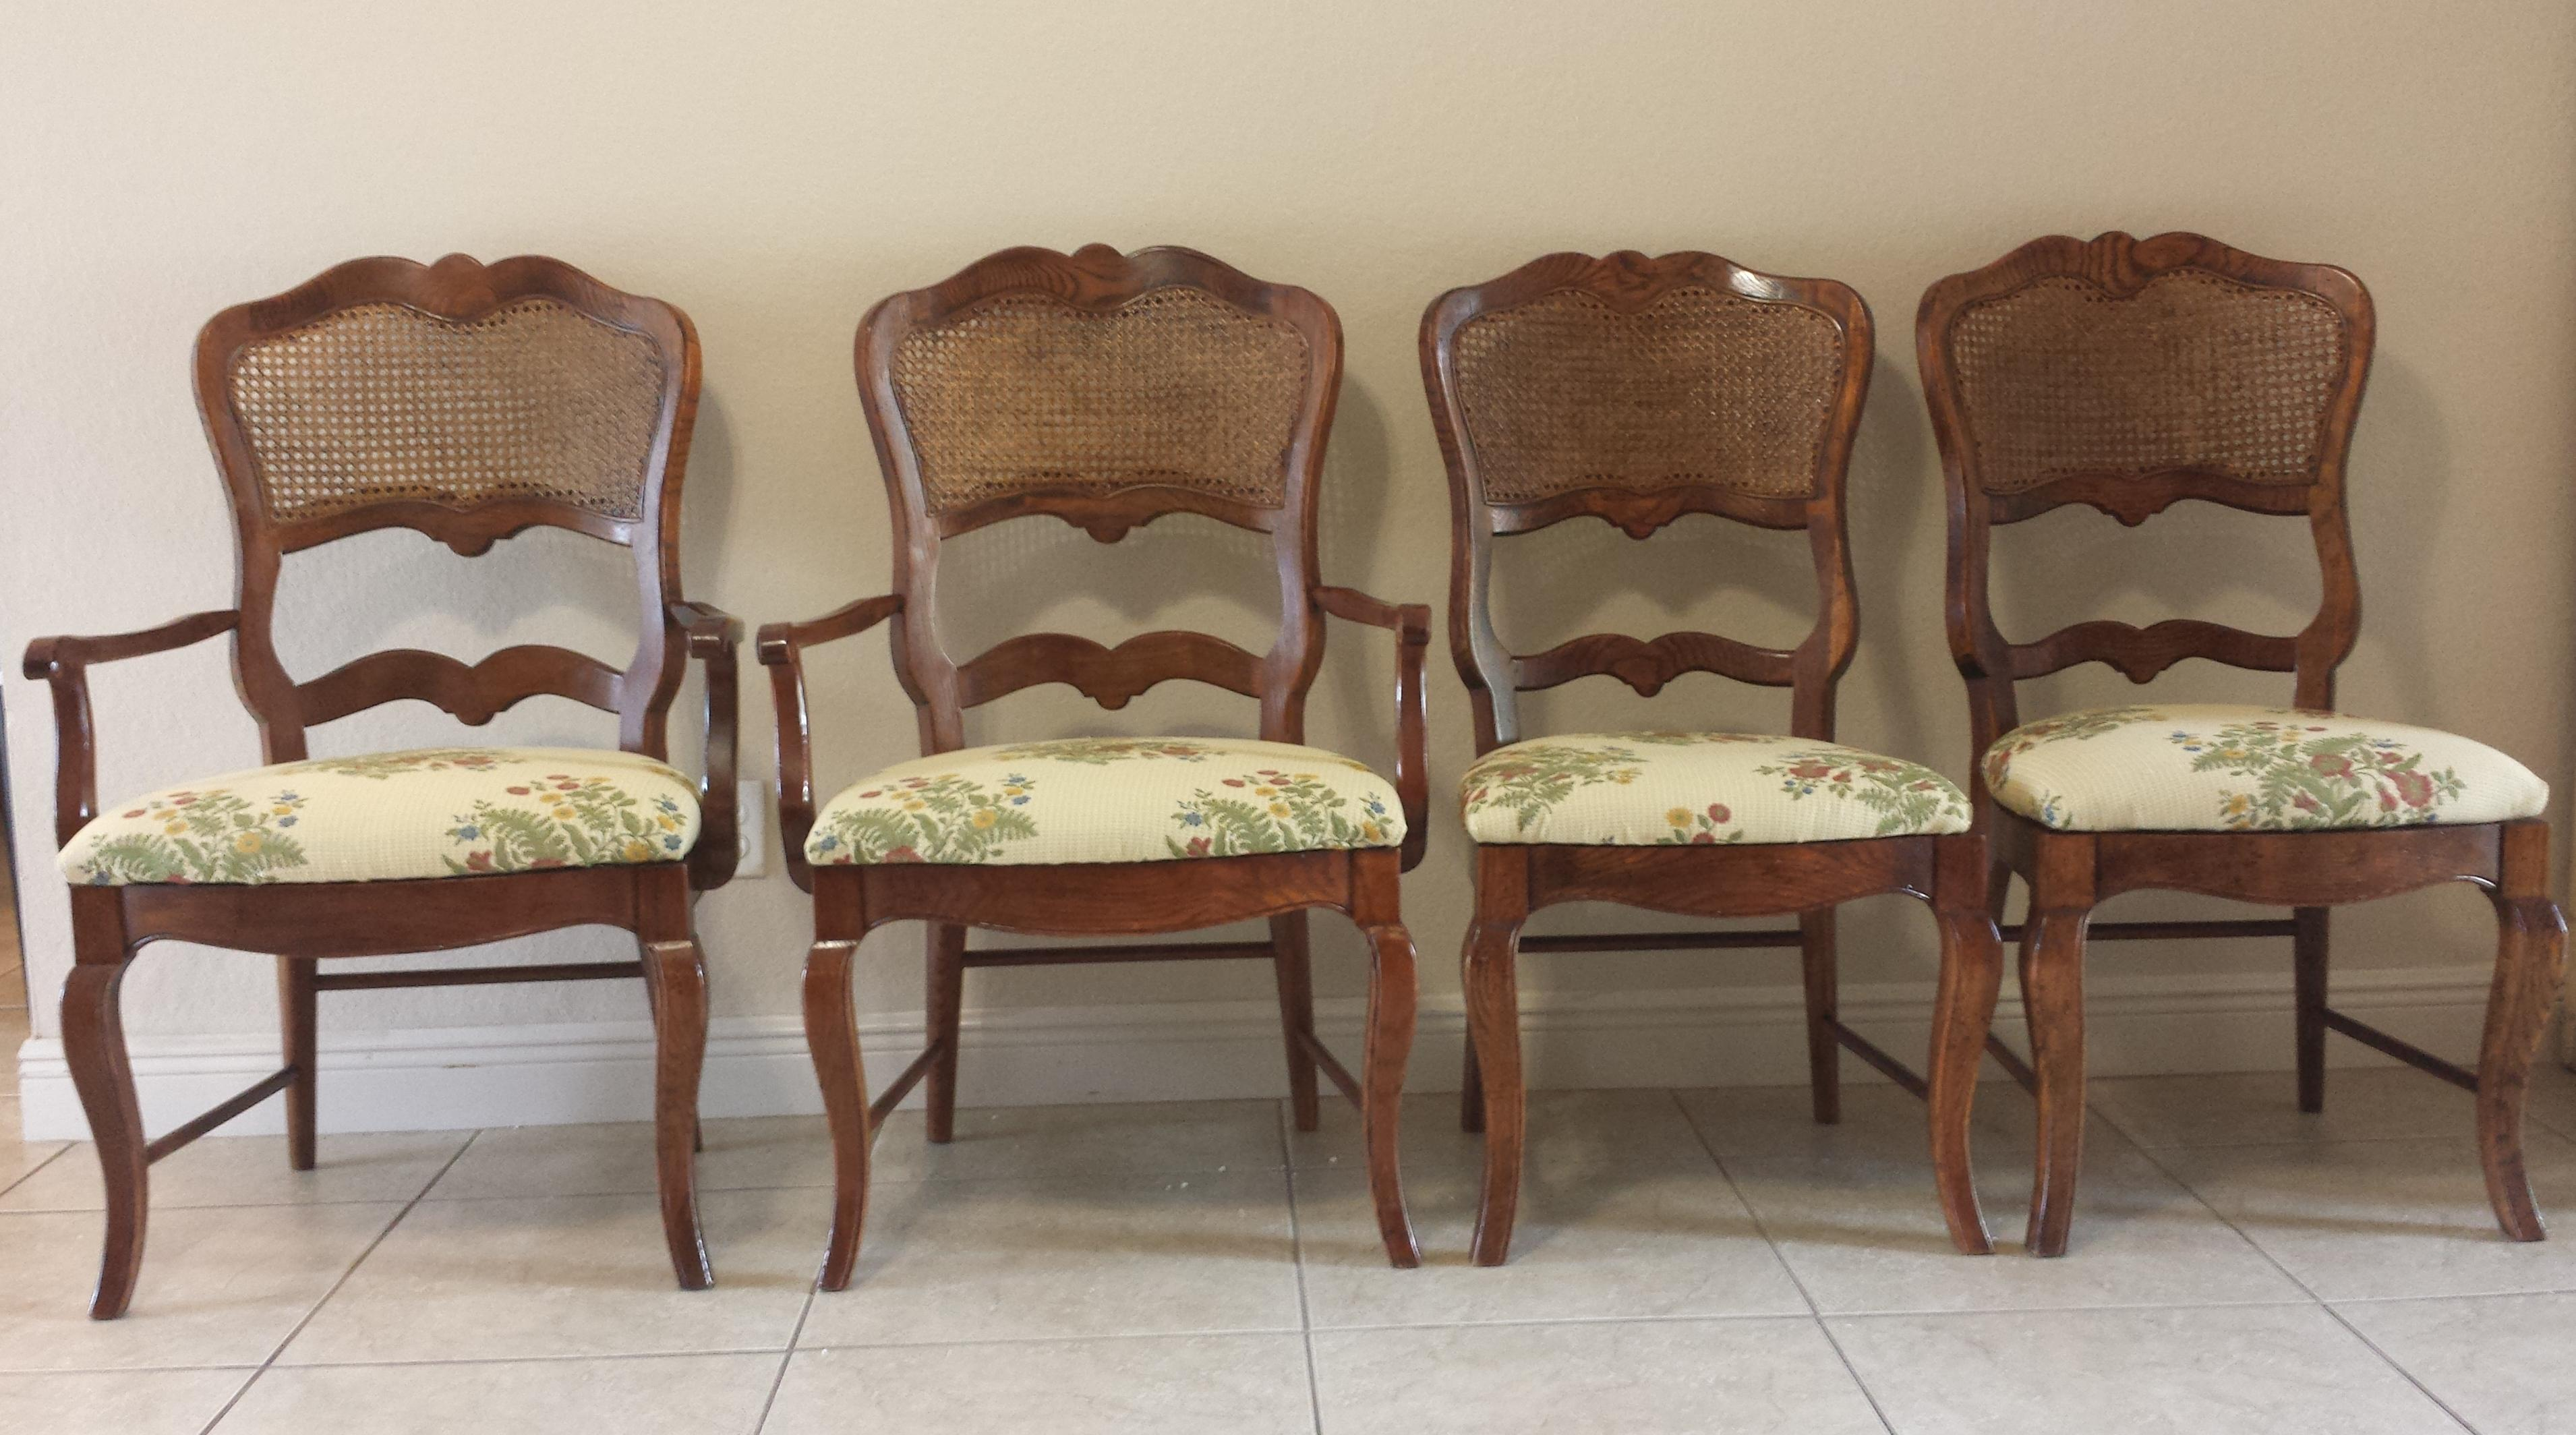 Century French Country Cane Back Dining Chairs Set of 4  : century french country cane back dining chairs set of 4 3676aspectfitampwidth640ampheight640 from www.chairish.com size 640 x 640 jpeg 38kB